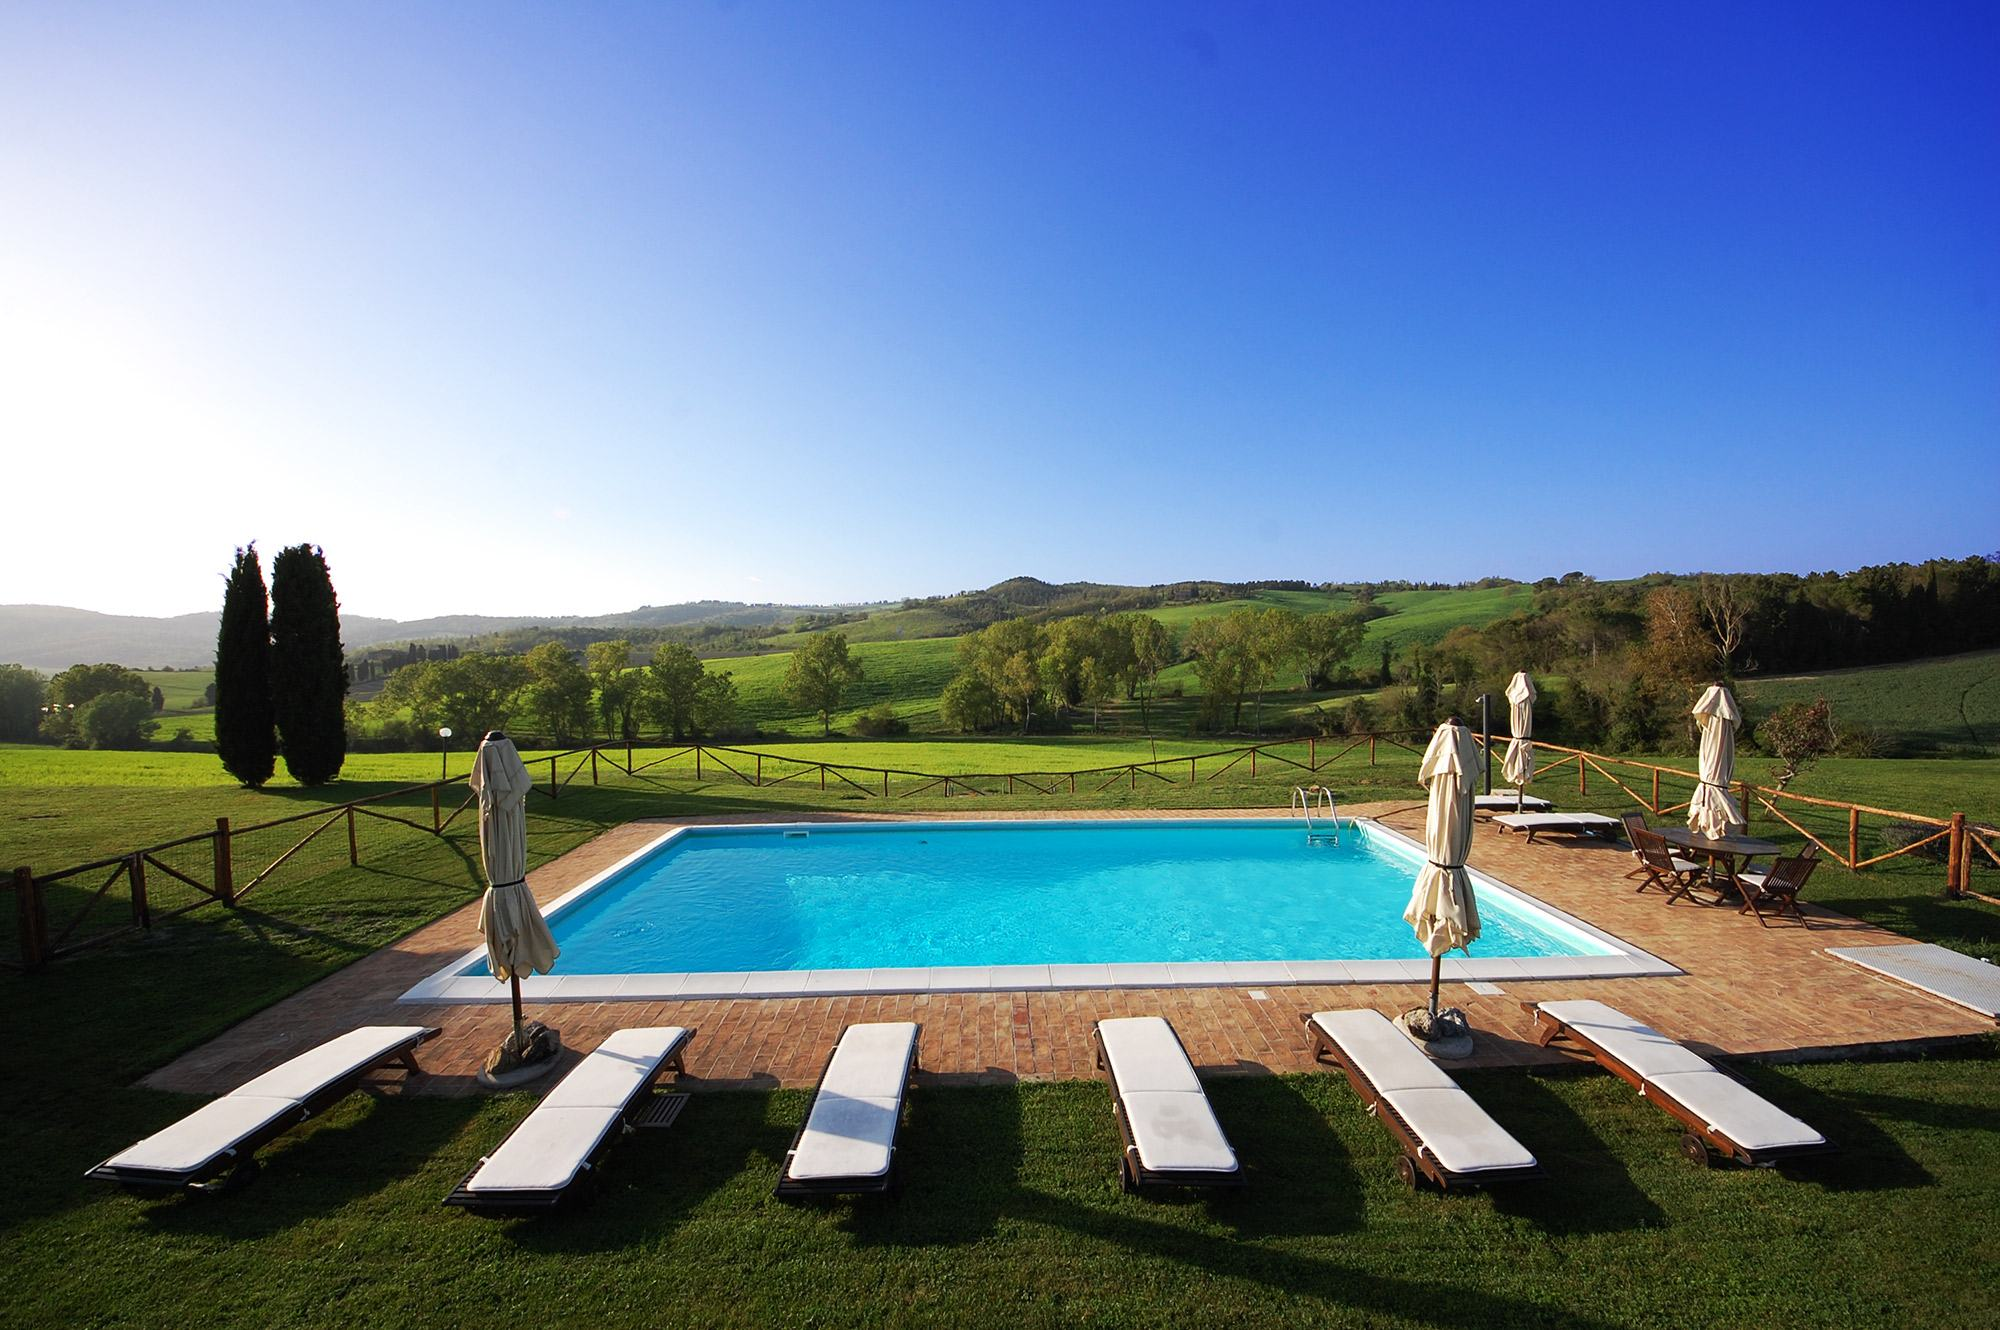 Villa panoramic pool in tuscany